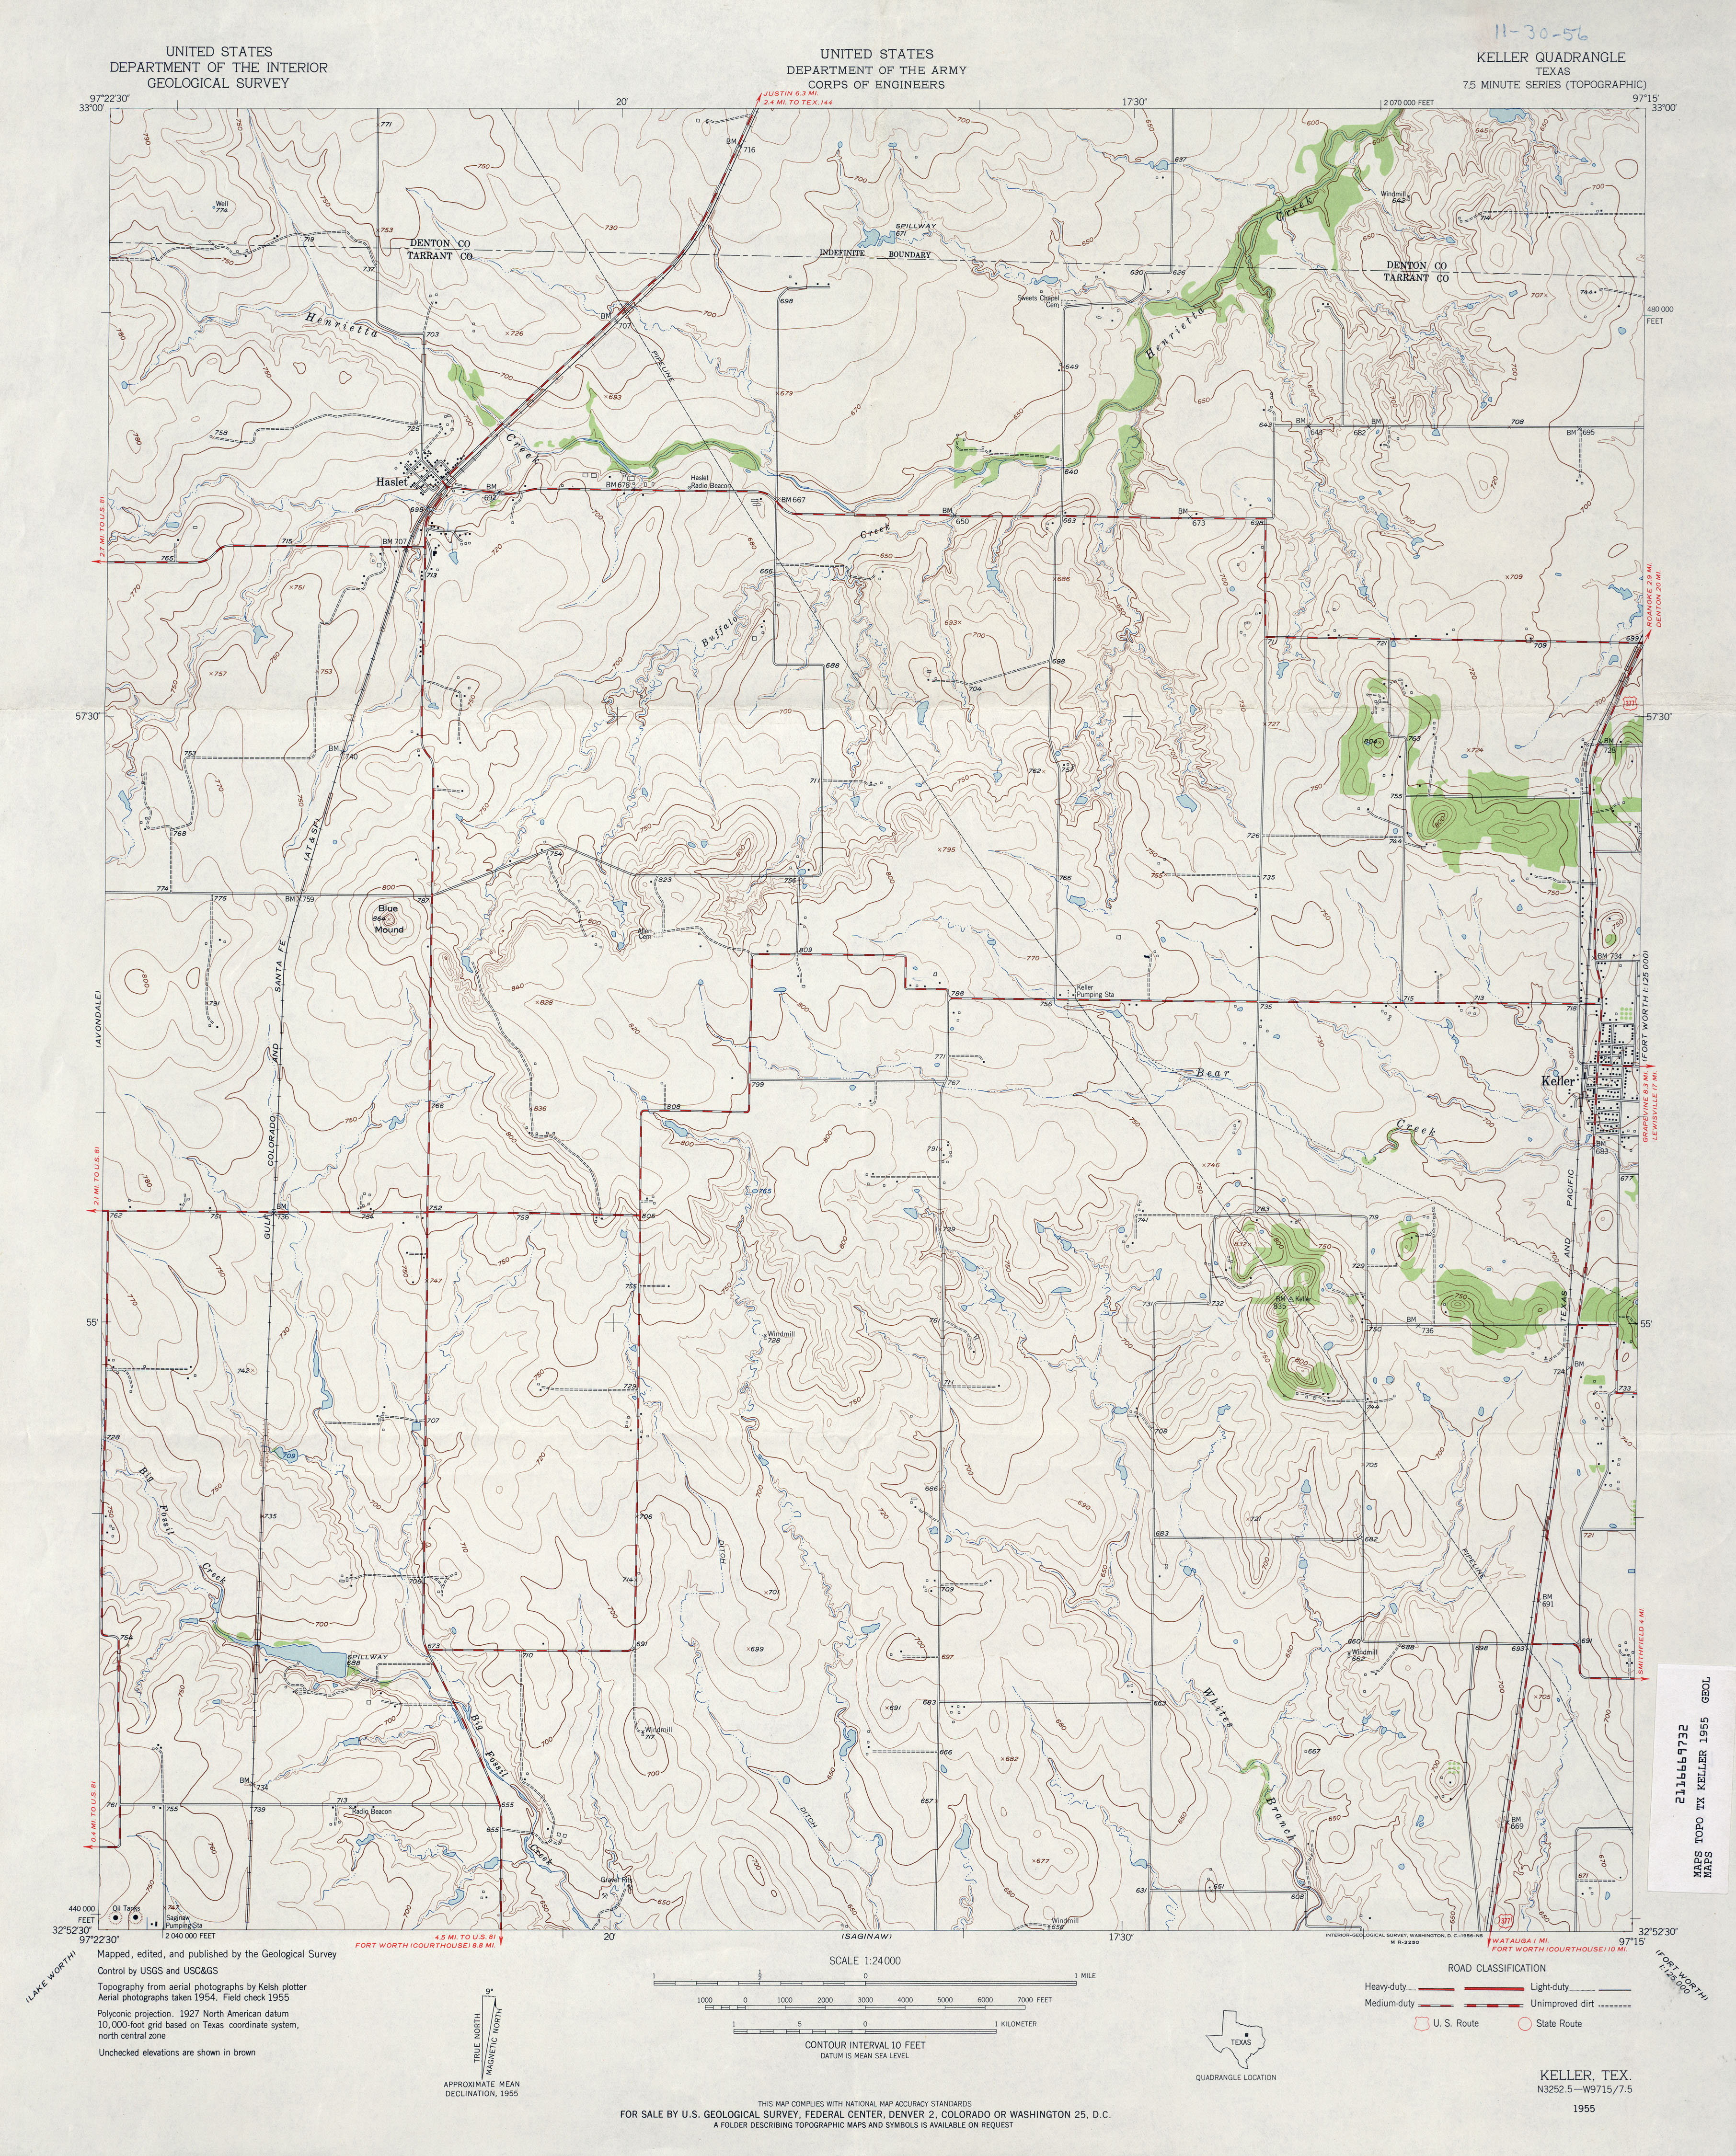 Texas Topographic Maps - Perry-Castañeda Map Collection - UT Liry on map garland tx, map jefferson tx, map dallas tx, map spring tx, map dfw tx, map texas tx, map amarillo tx, map wise county tx, map parker county tx, map whitesboro tx, map anna tx, map edinburg tx, map burkeville tx, map abilene tx, map aledo tx, map garden city tx, map houston tx, map jacksboro tx, map greenville tx, map ellis county tx,